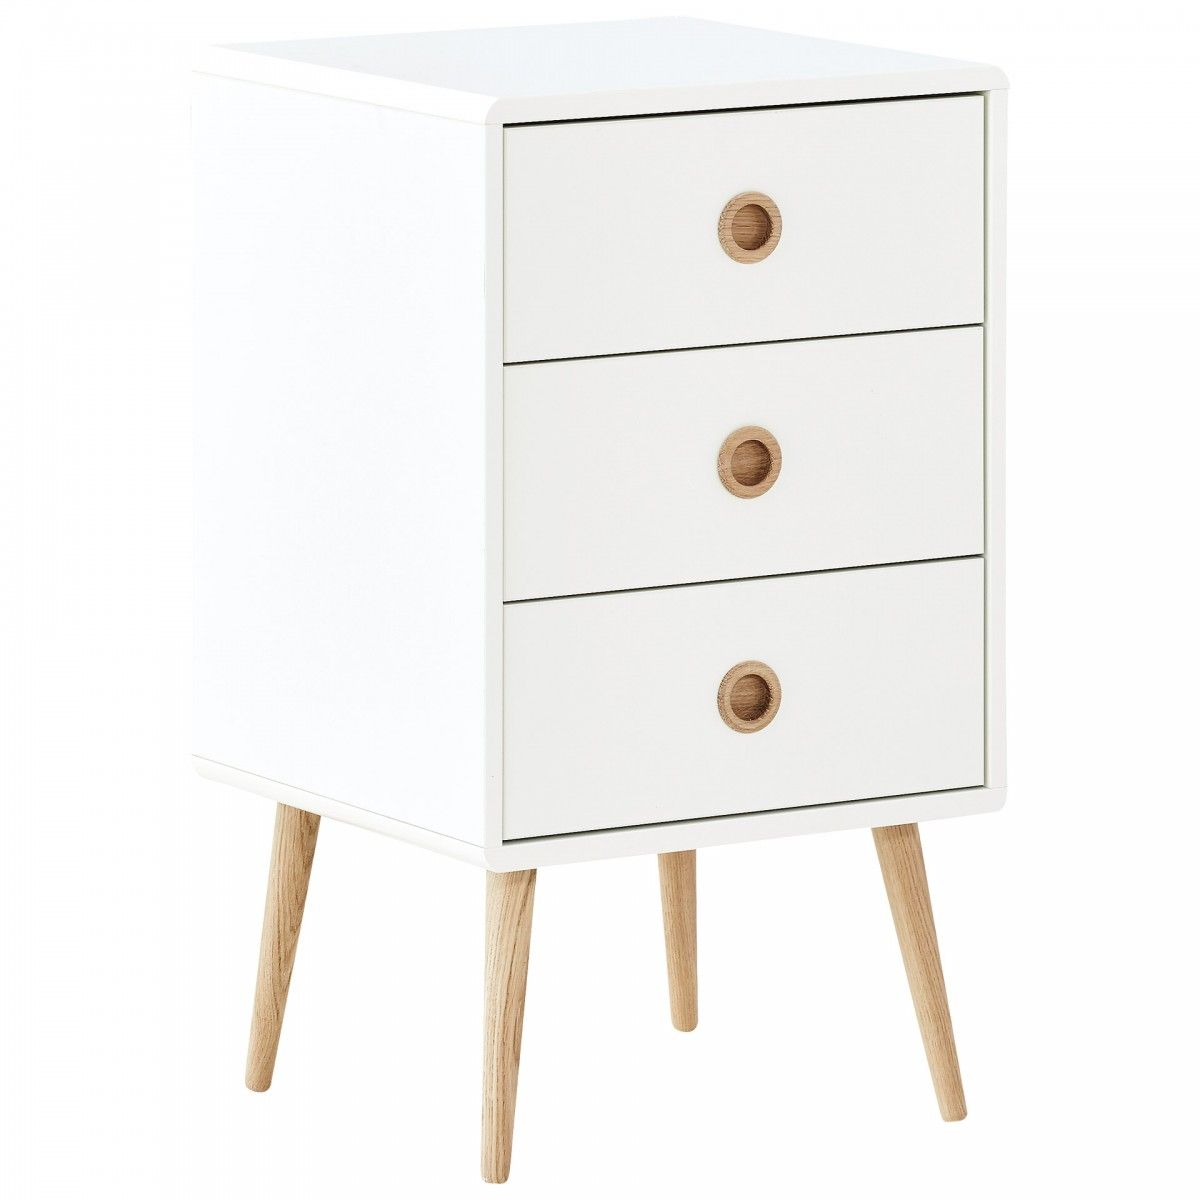 Kommode Nysted 3 Schubladen Home Decor Decor Furniture